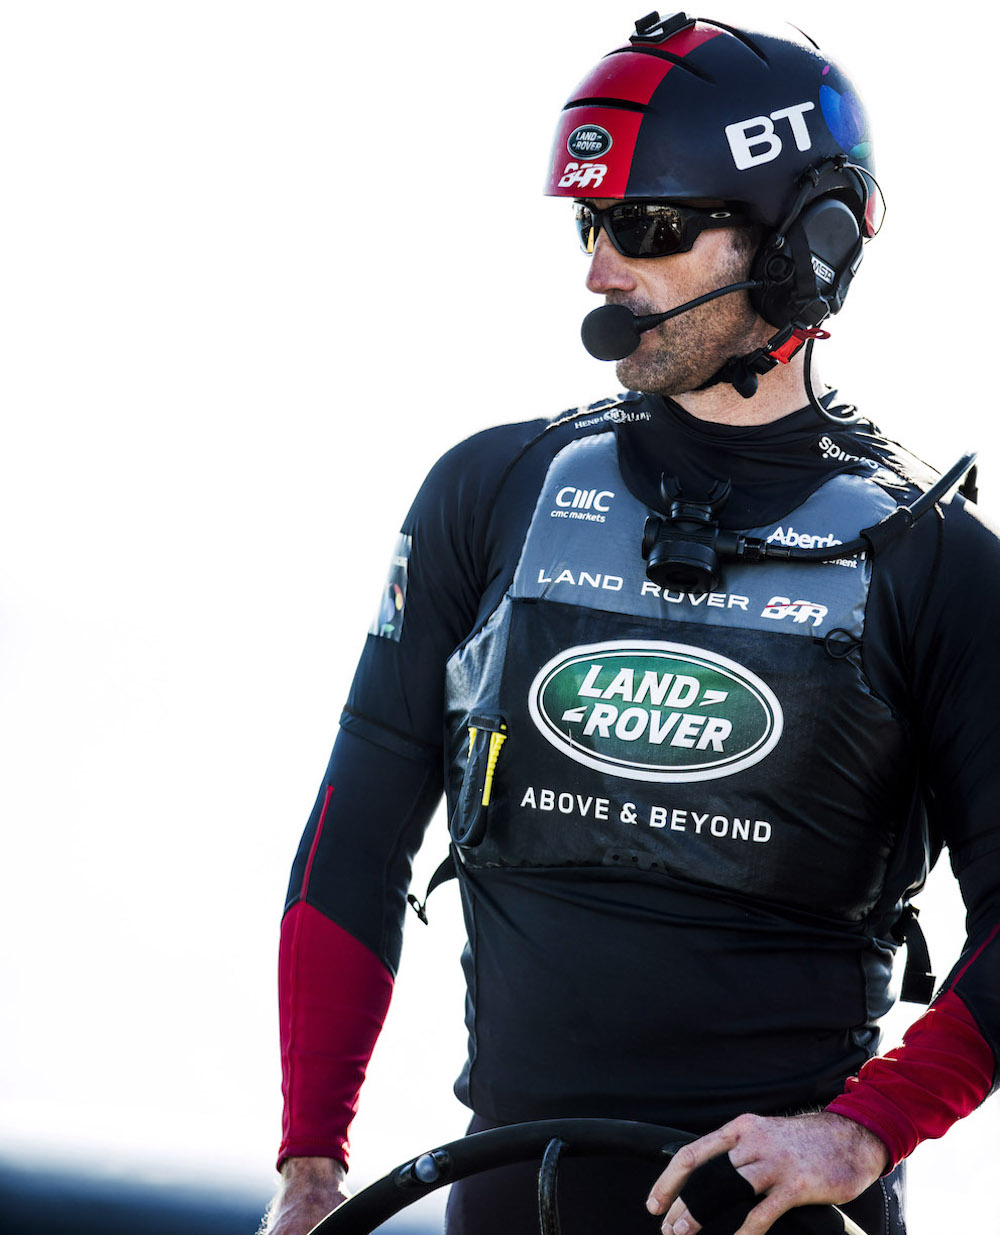 Photo of Sir Ben AInslie wearing Spinlock T2 PFD